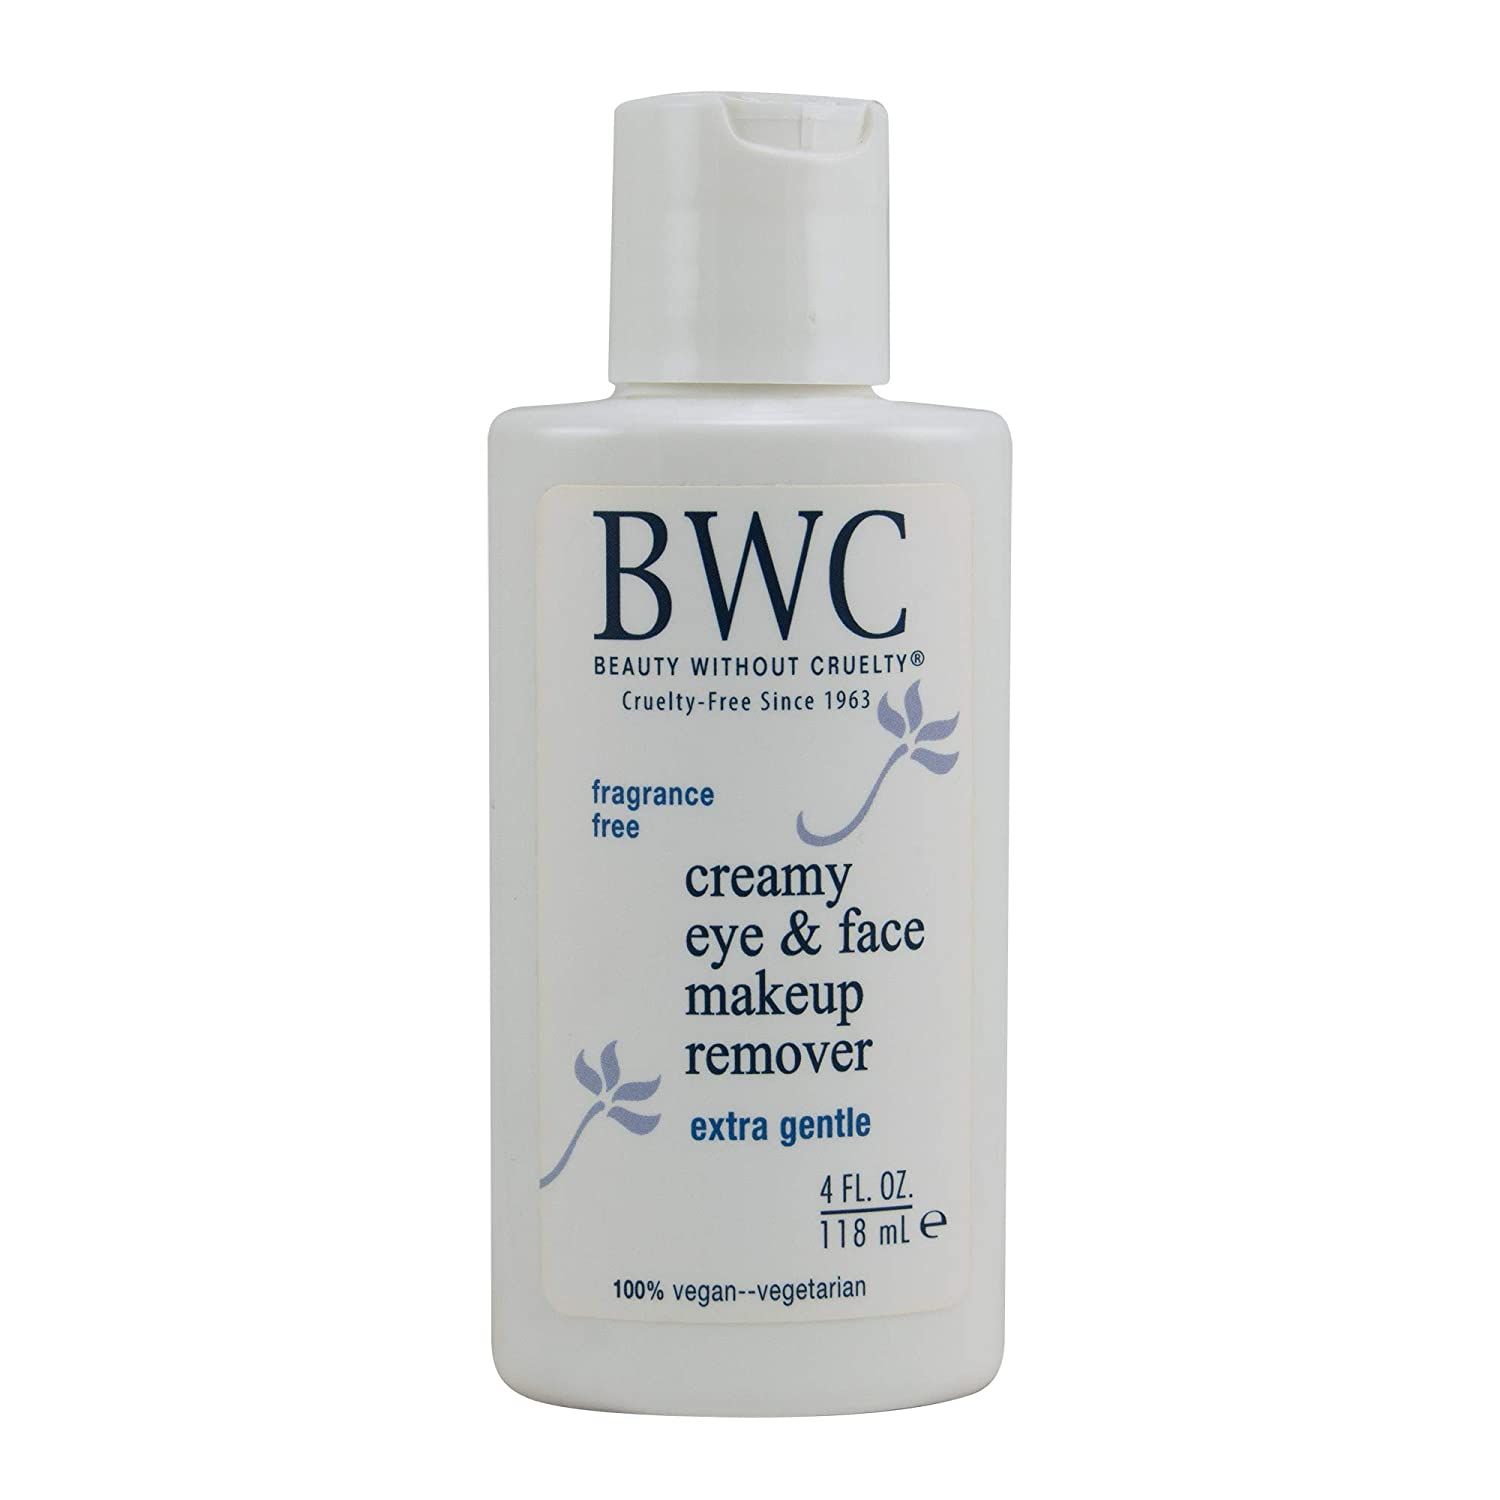 Beauty Without Cruelty Creamy Eye Make-up Remover, 4 fl. oz.